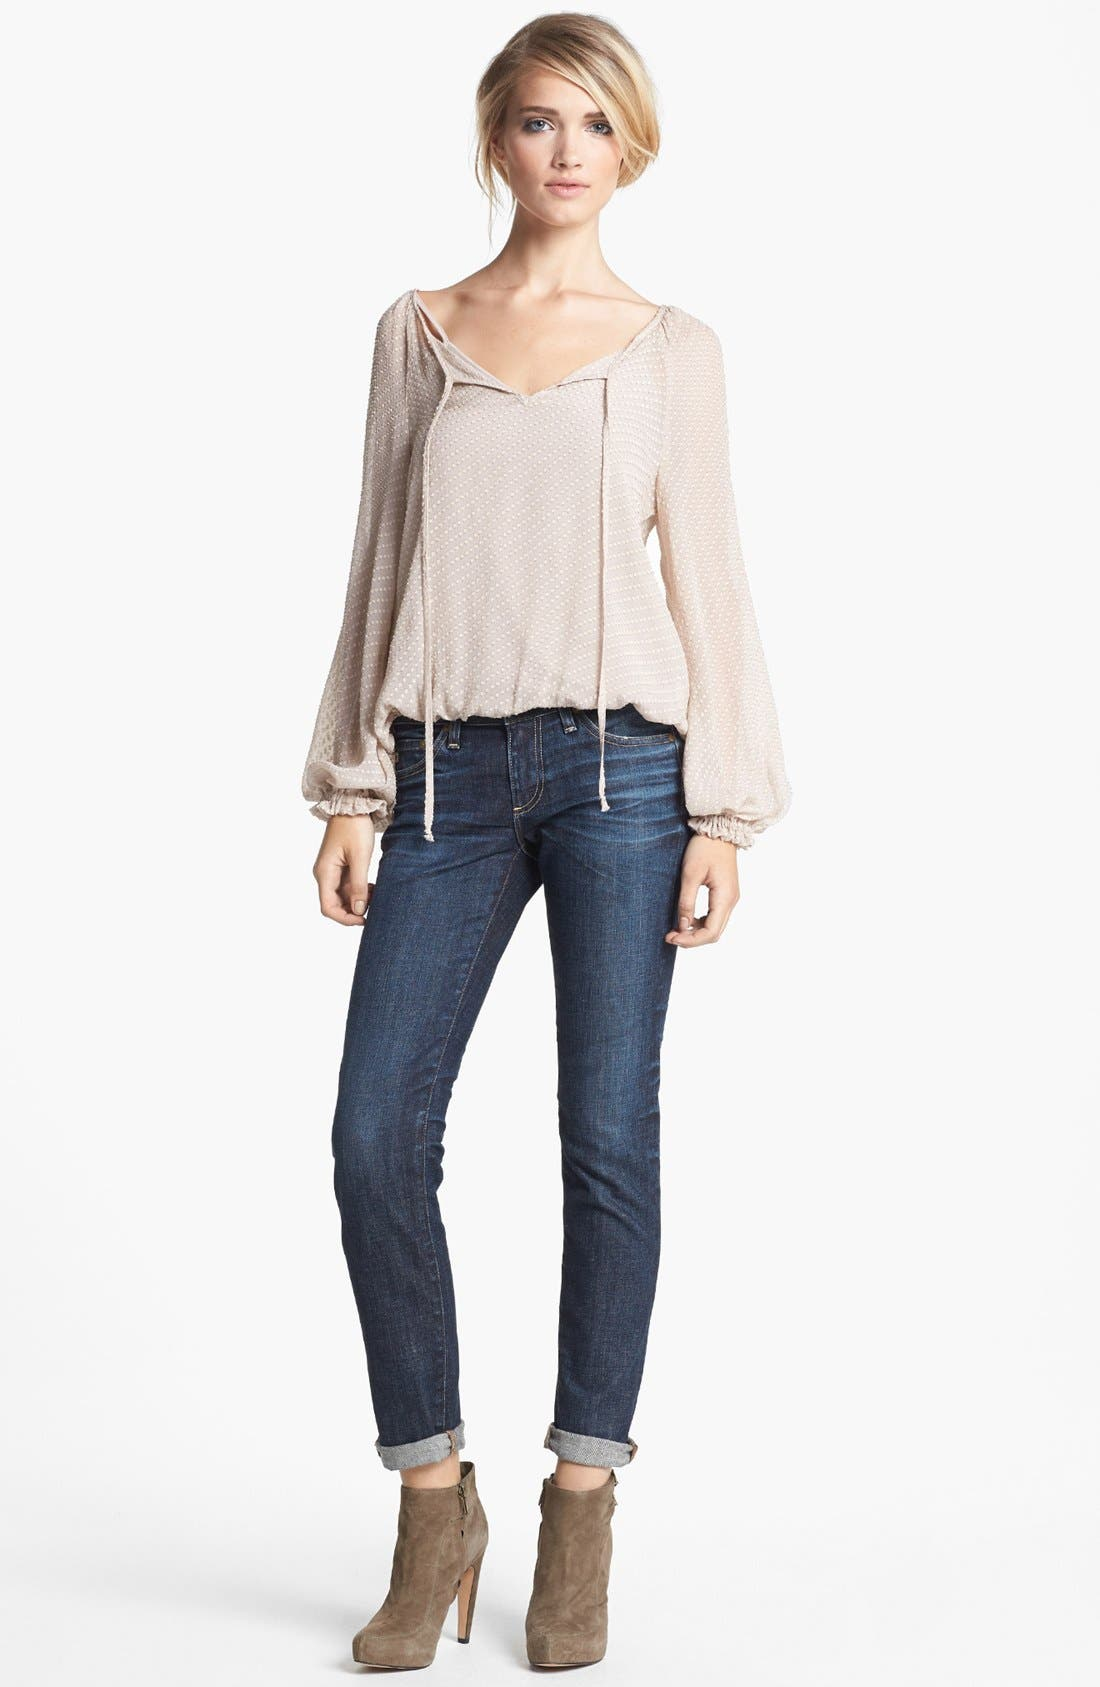 Main Image - Ella Moss Top & AG Jeans Relaxed Jeans